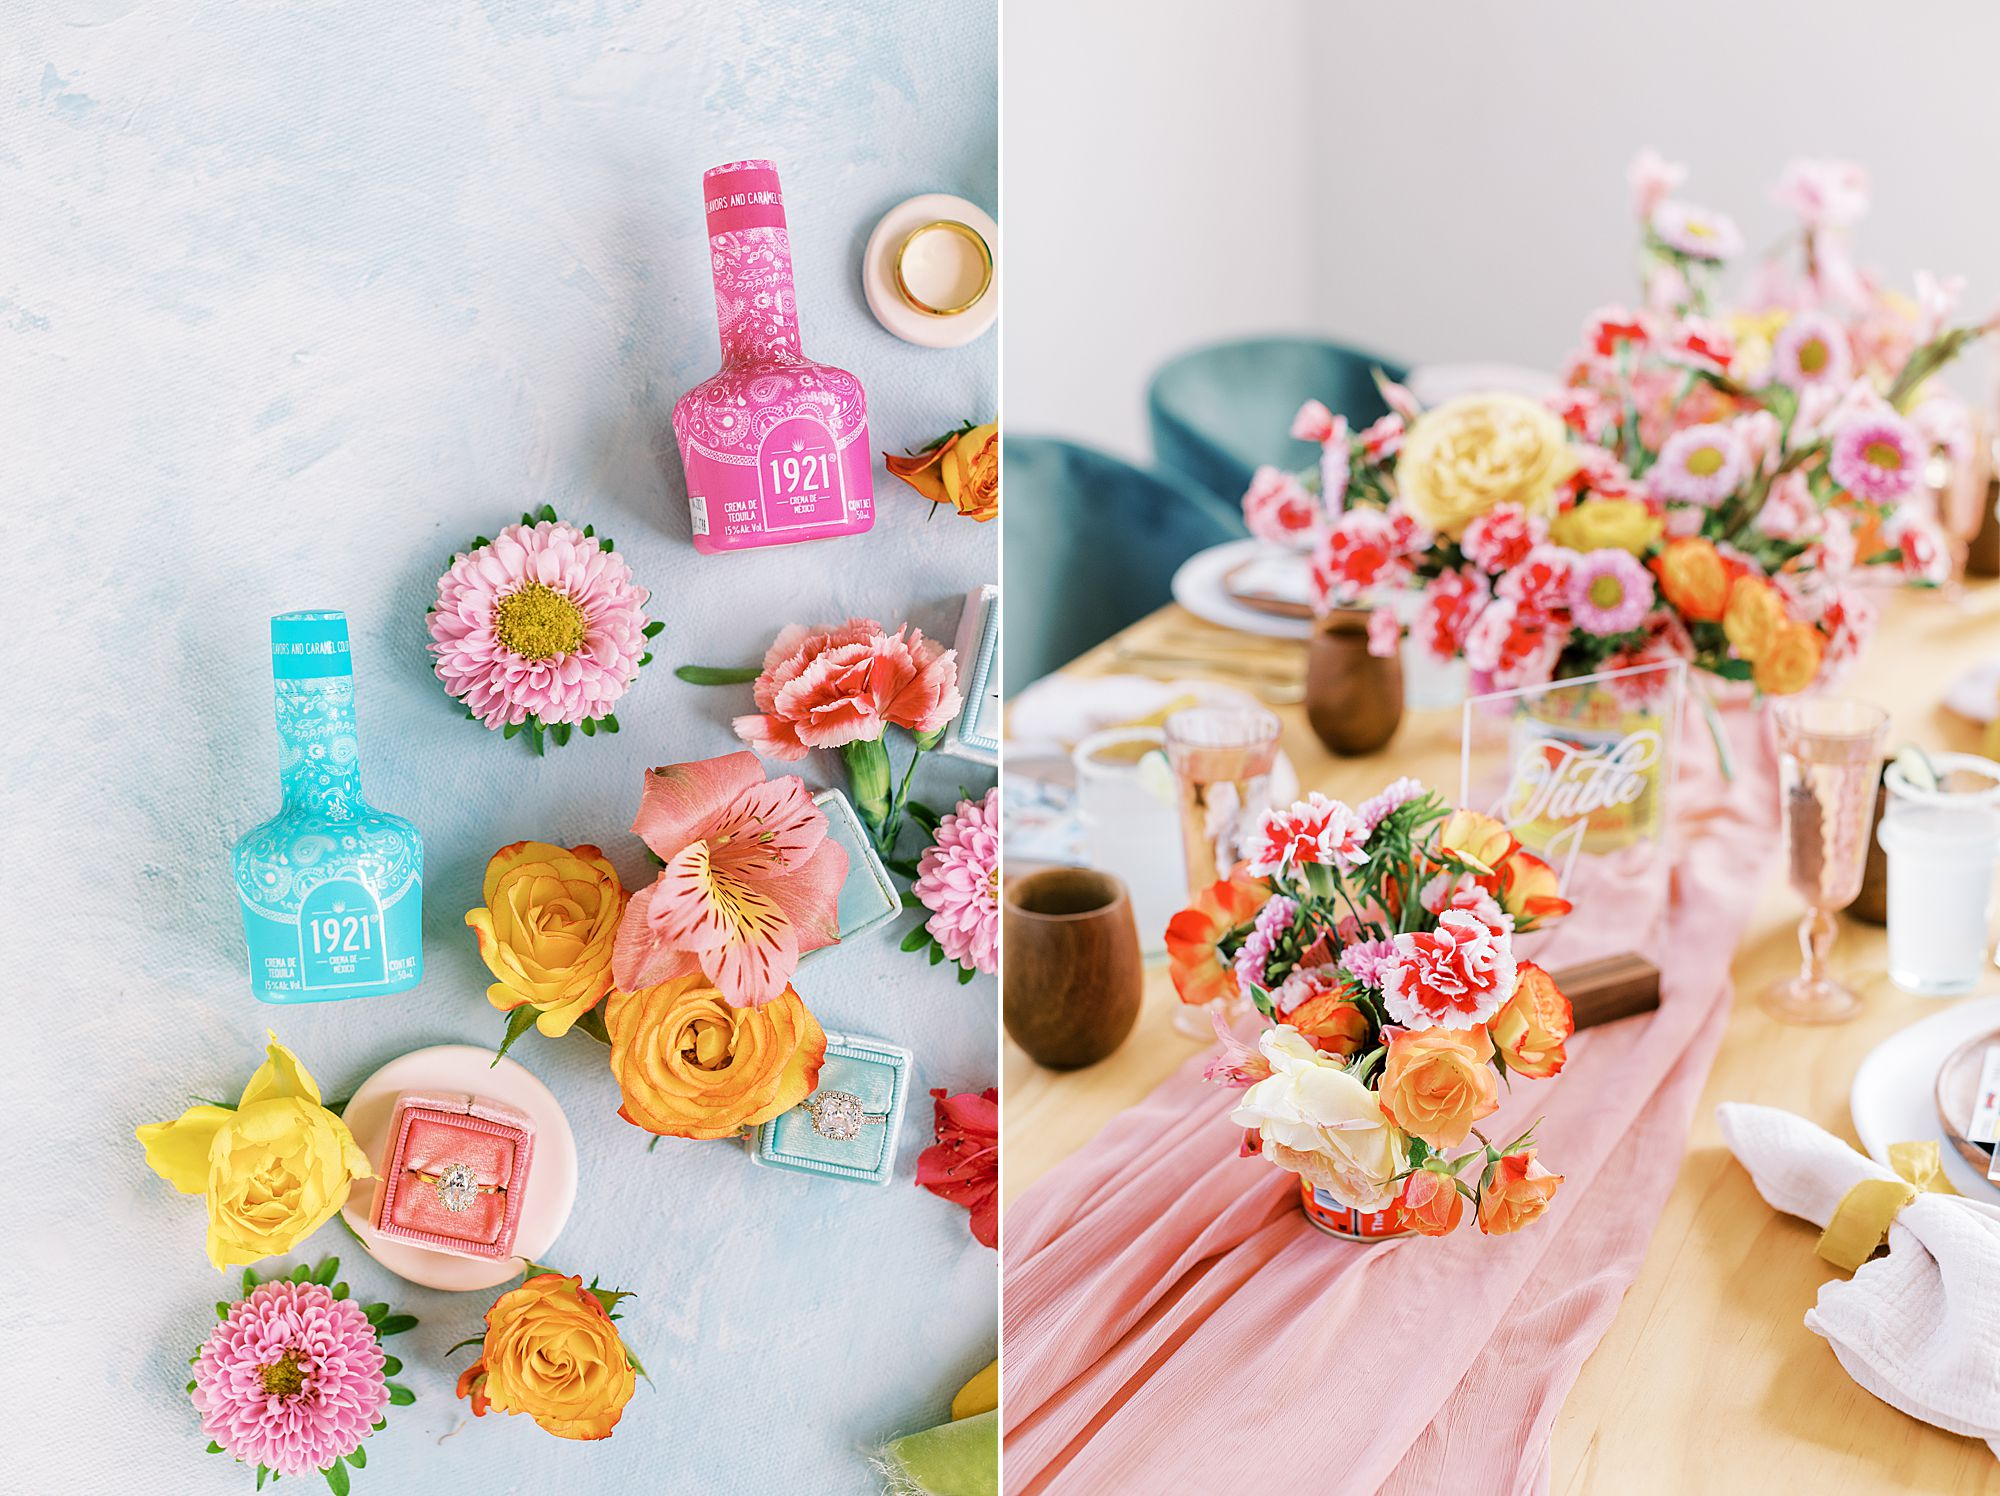 Cinco De Mayo Inspiration for Your FIesta - Party Crush Studio and Ashley Baumgartner_0051.jpg